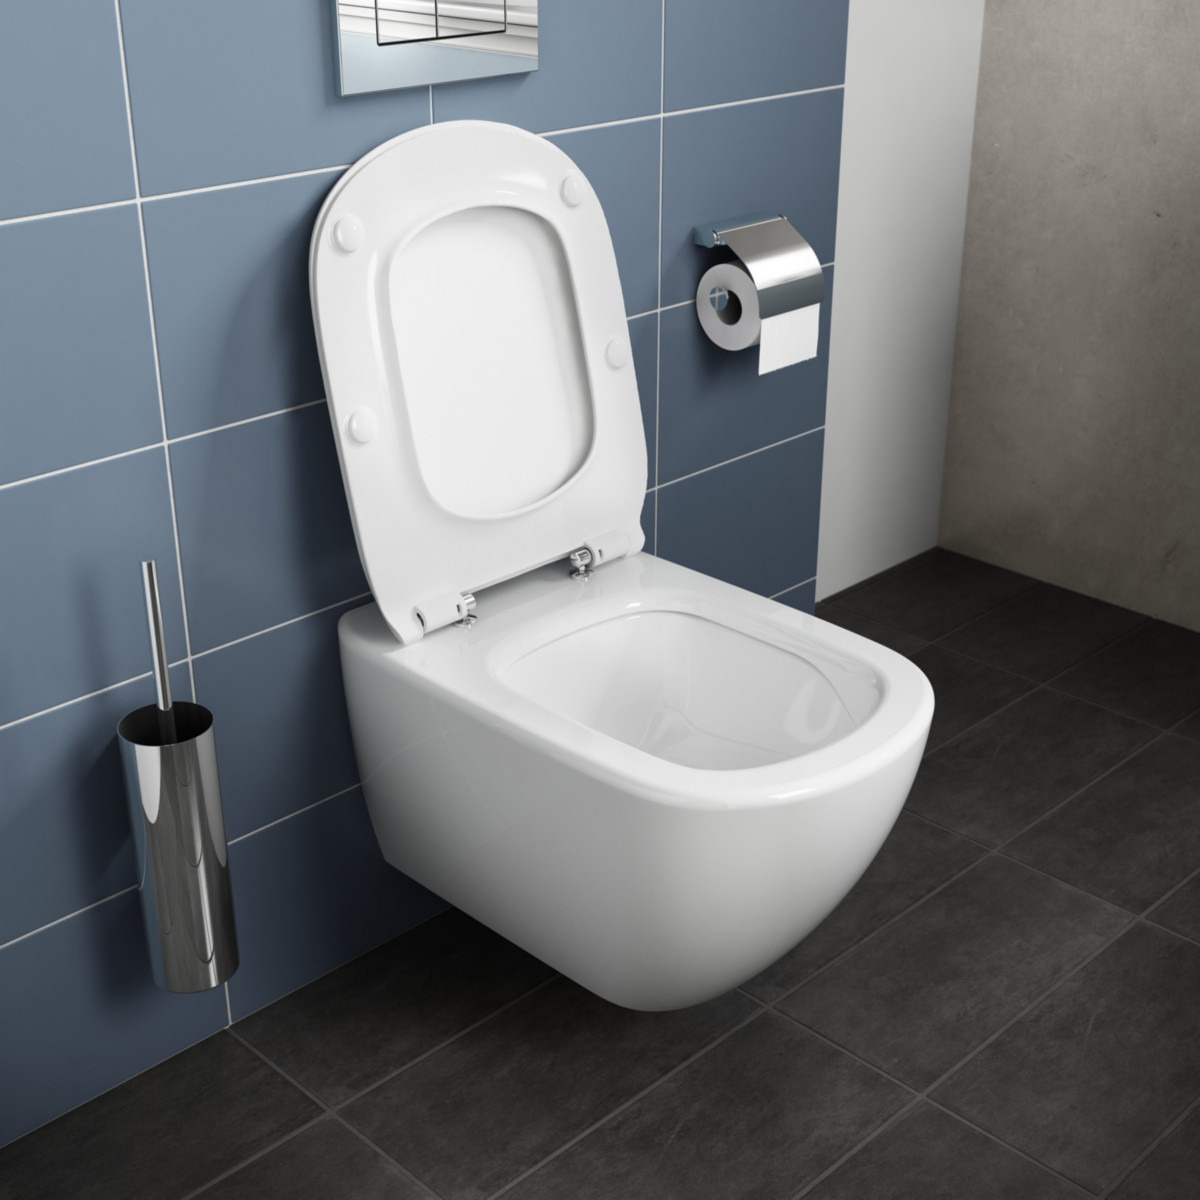 Wc Suspendu Ideal Standard : pack wc suspendu ideal standard aquablade tesi t354601 ~ Pogadajmy.info Styles, Décorations et Voitures